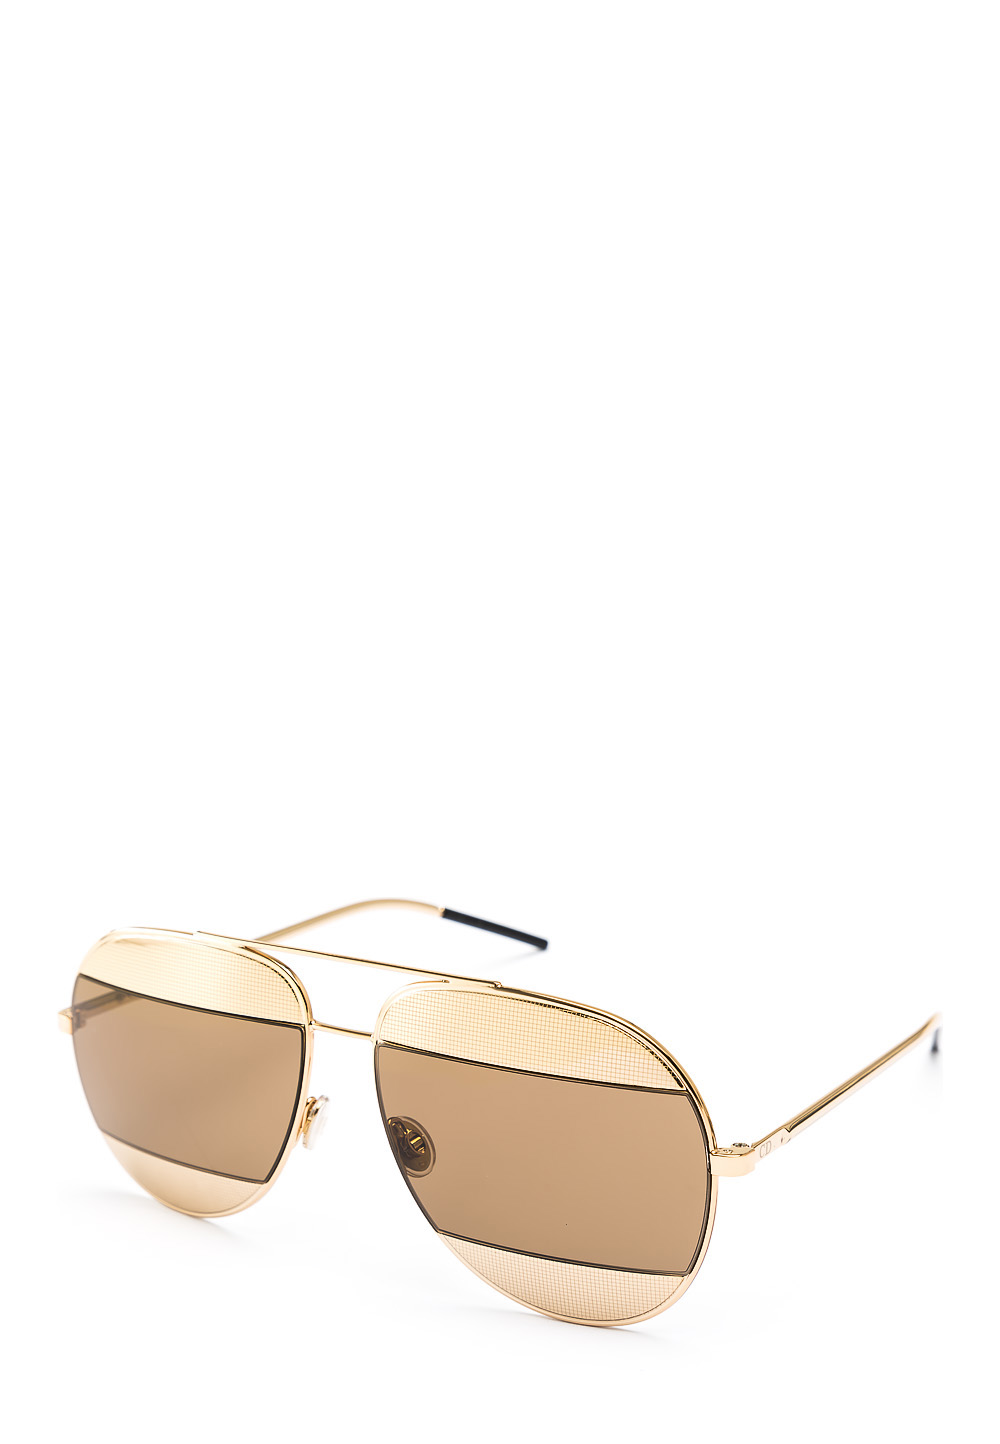 Sonnenbrille split, UV 400, golden